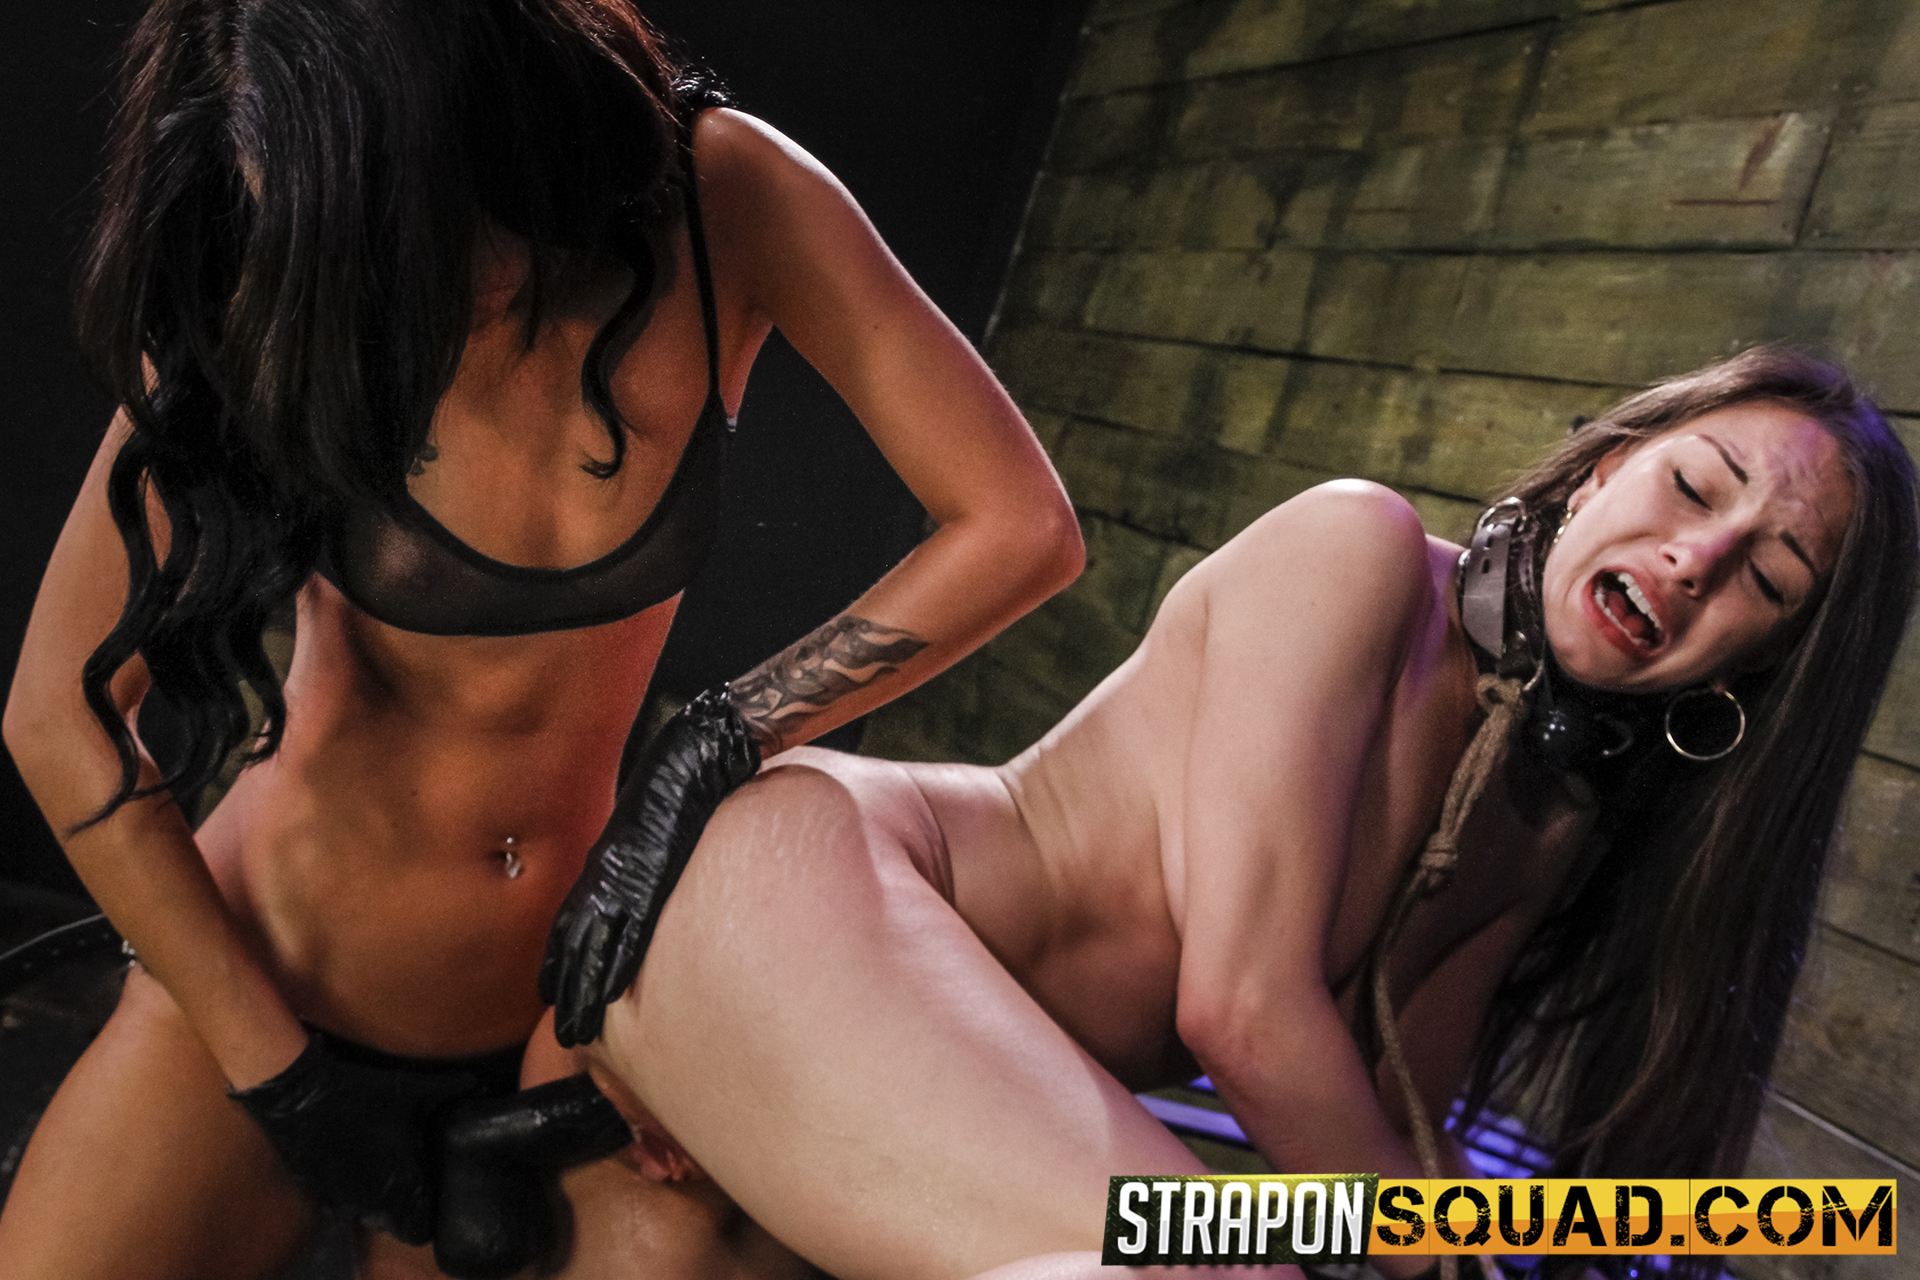 Lesbian domination and bondage with alexis rodriguez and esmi lee  dominatrix esmi lee never leaves her great black strapon dildo at home for dungeon play  she s quite beautiful at having hardcore bdsm fun with bondage rough sex spanking slapping tits bit. Mistress Esmi Lee never leaves her big black strapon dildo at home for dungeon play. She's quite beautiful at having hardcore BDSM fun with bondage, rough sex, spanking, slapping tits, biting nipples, smacking, flogging, deep penetration, constant orgasms and more sex toys. We're not sure if sex slave Alexis Rodriguez was ready for this shoot. We've never heard anyone scream and whine like her. Thank beautifulness for ball gags!